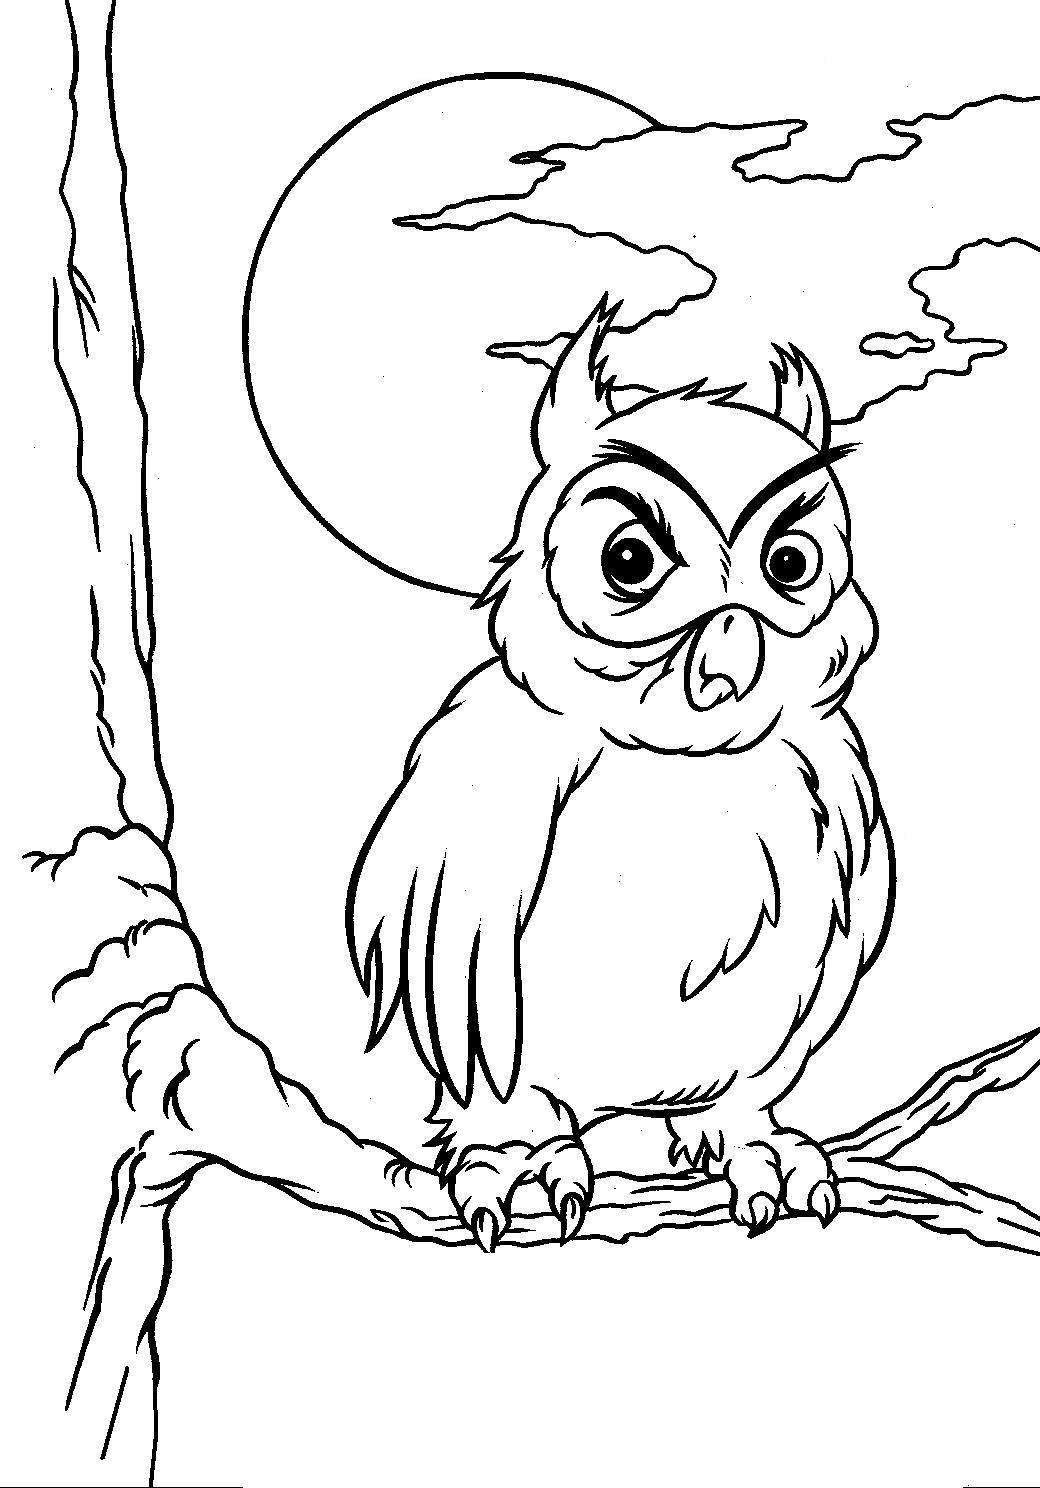 Angry Owl Coloring Page for Halloween Activities - Print ...